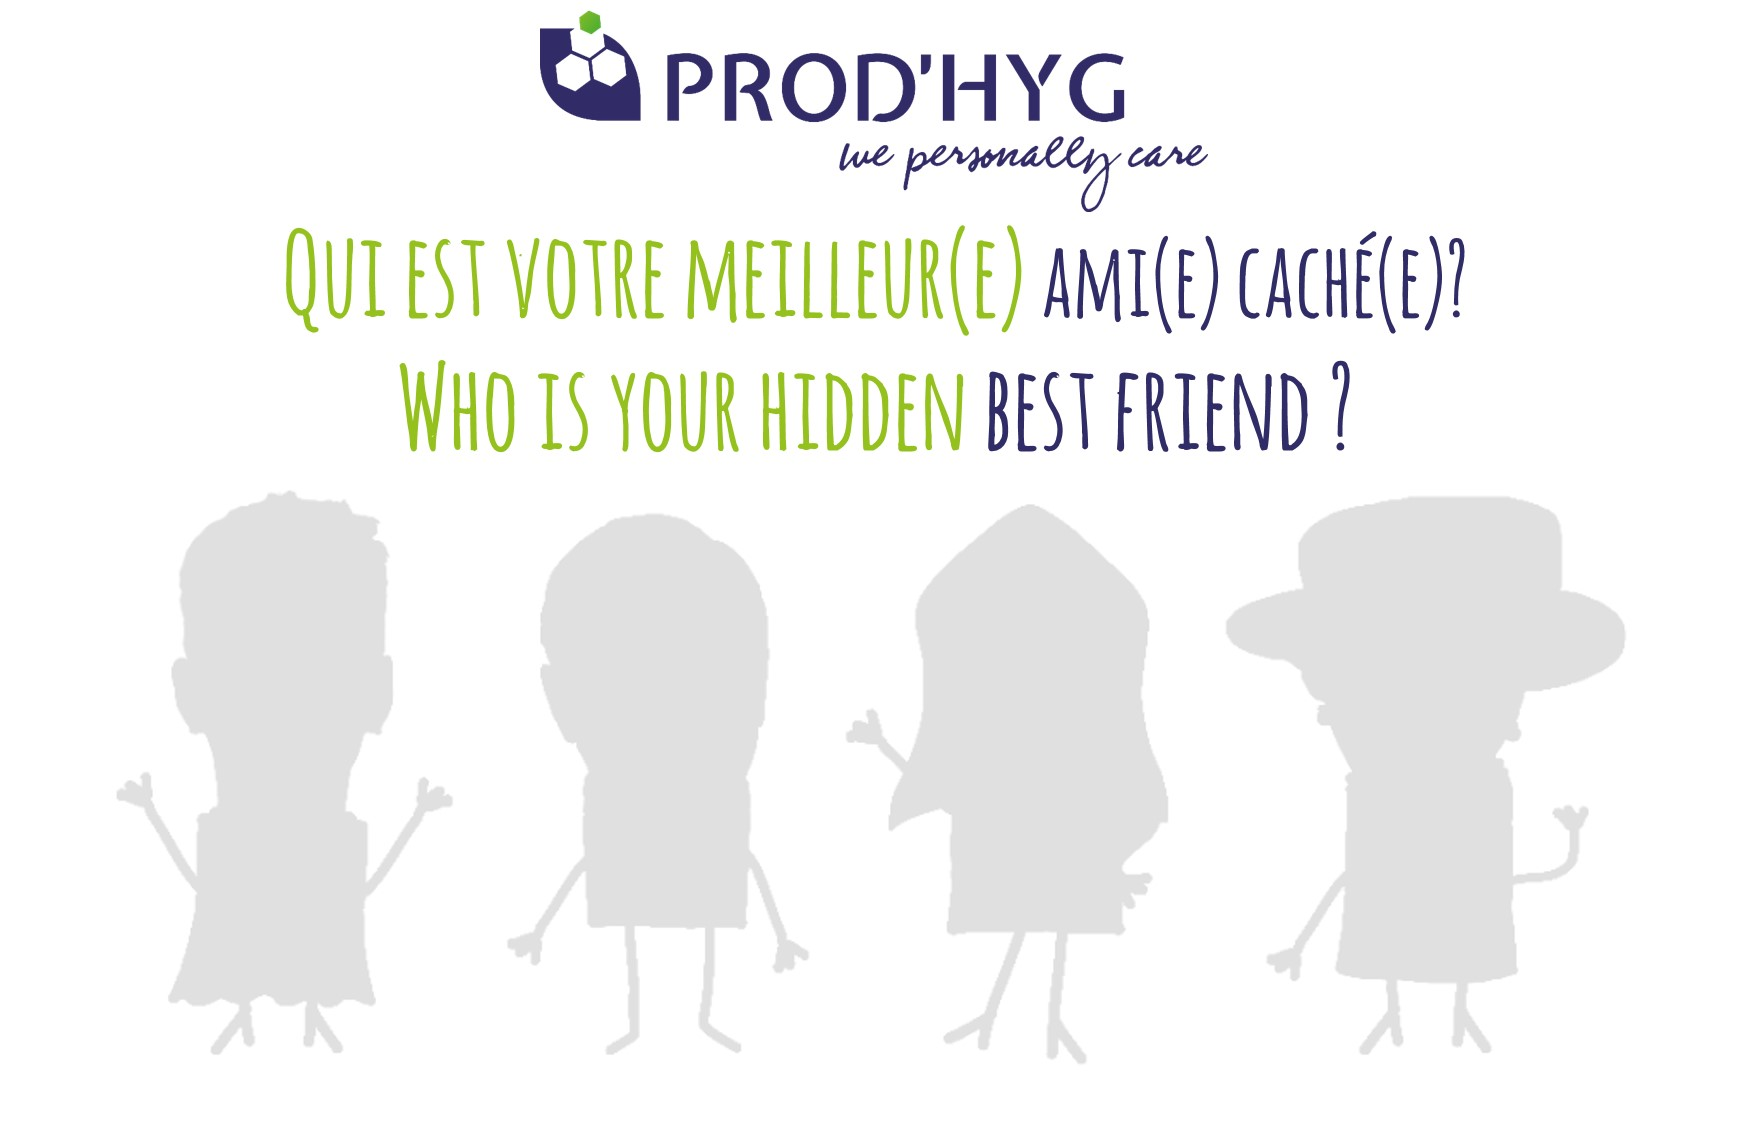 Who is your hidden best friend?